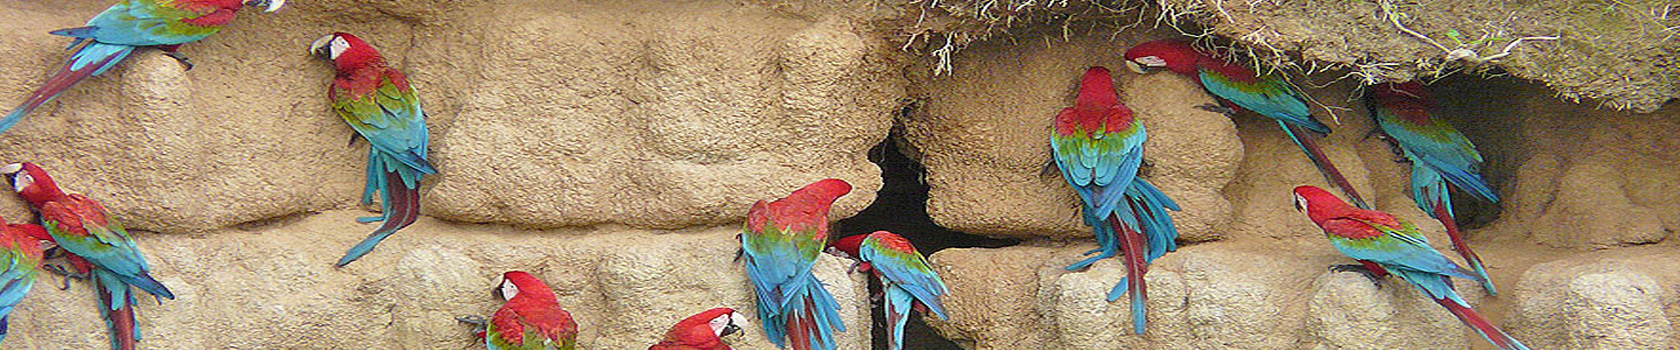 Manu Park Macaw Clay Lick - Amazon Wildlife